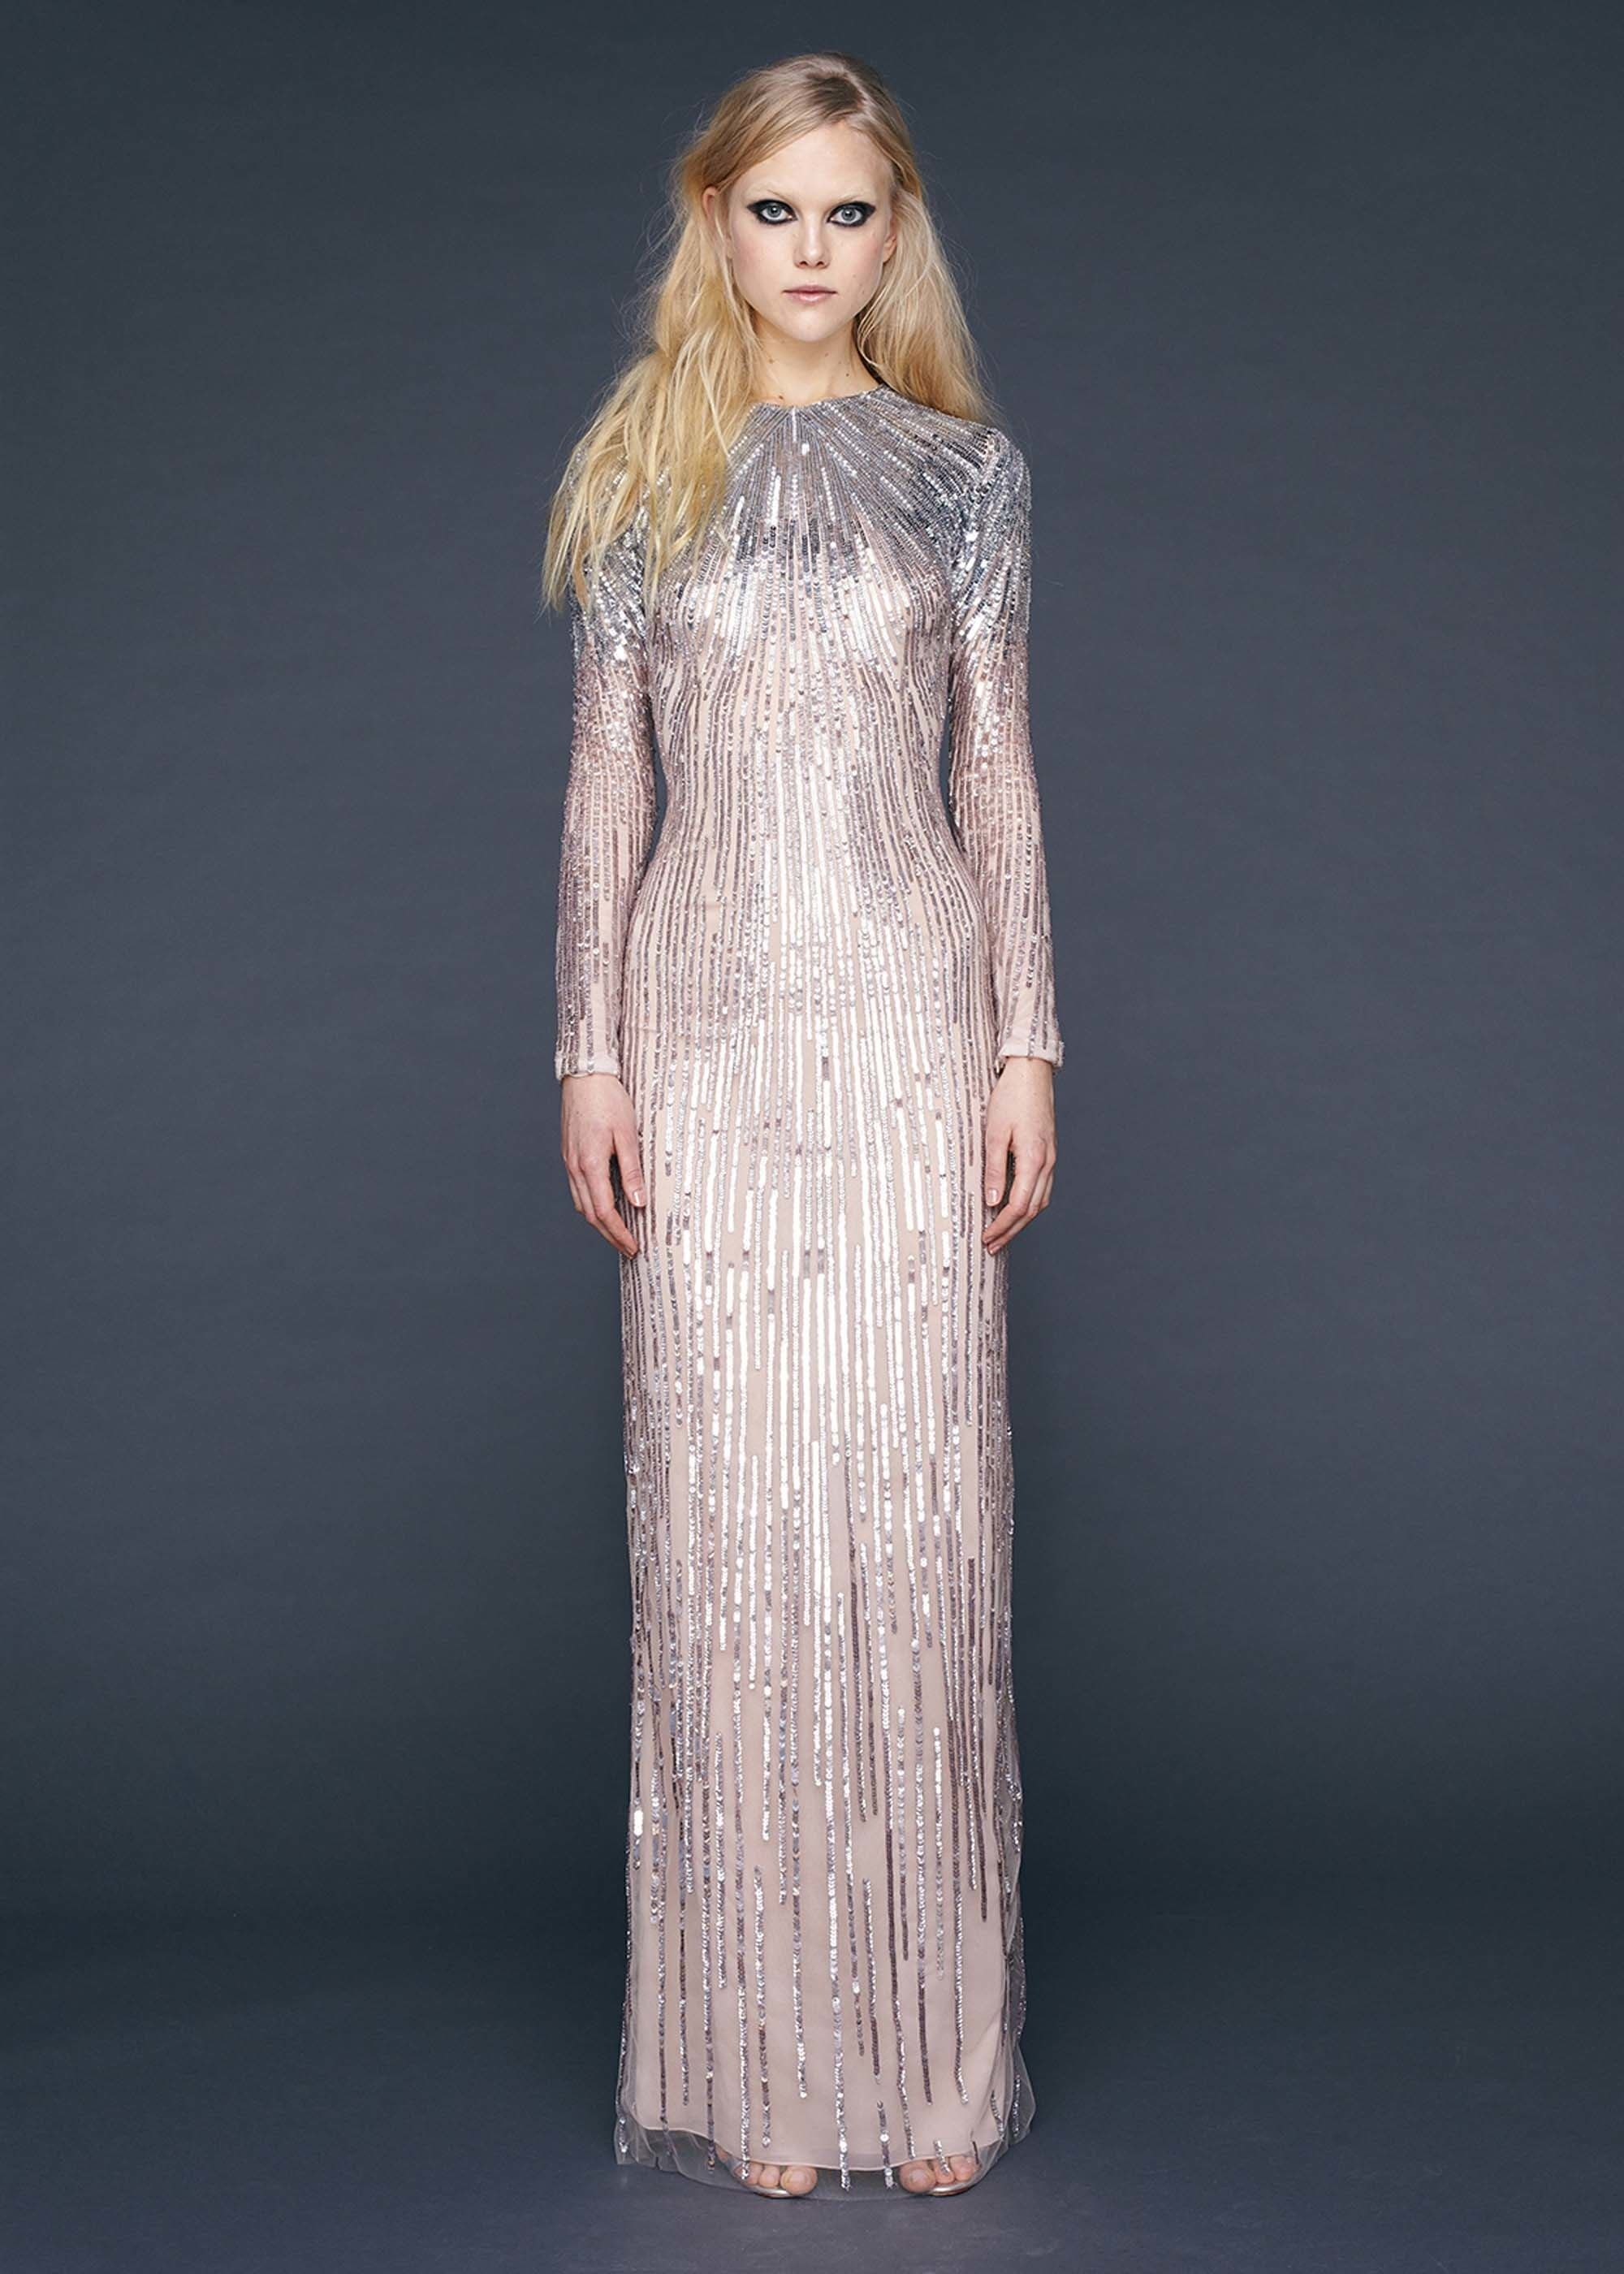 Reem Acra | Pre-Fall 2016 | 03 Pale pink sequined long sleeve maxi dress